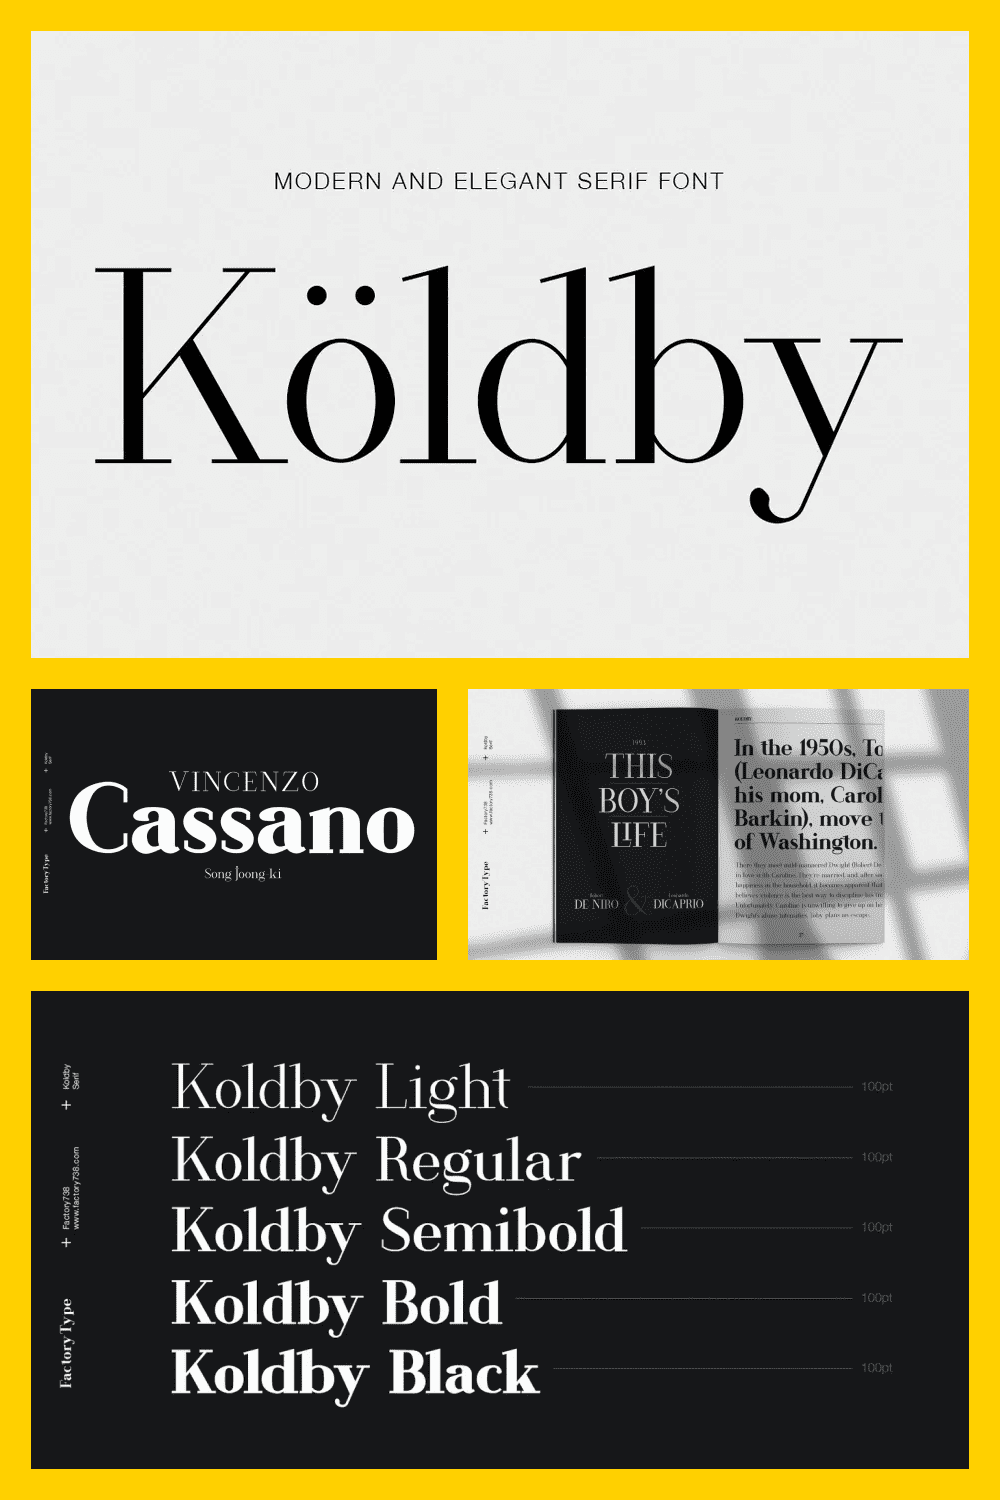 It is a modern and stylish serif font family. The combination of modern and vintage elements creates an elegant design.